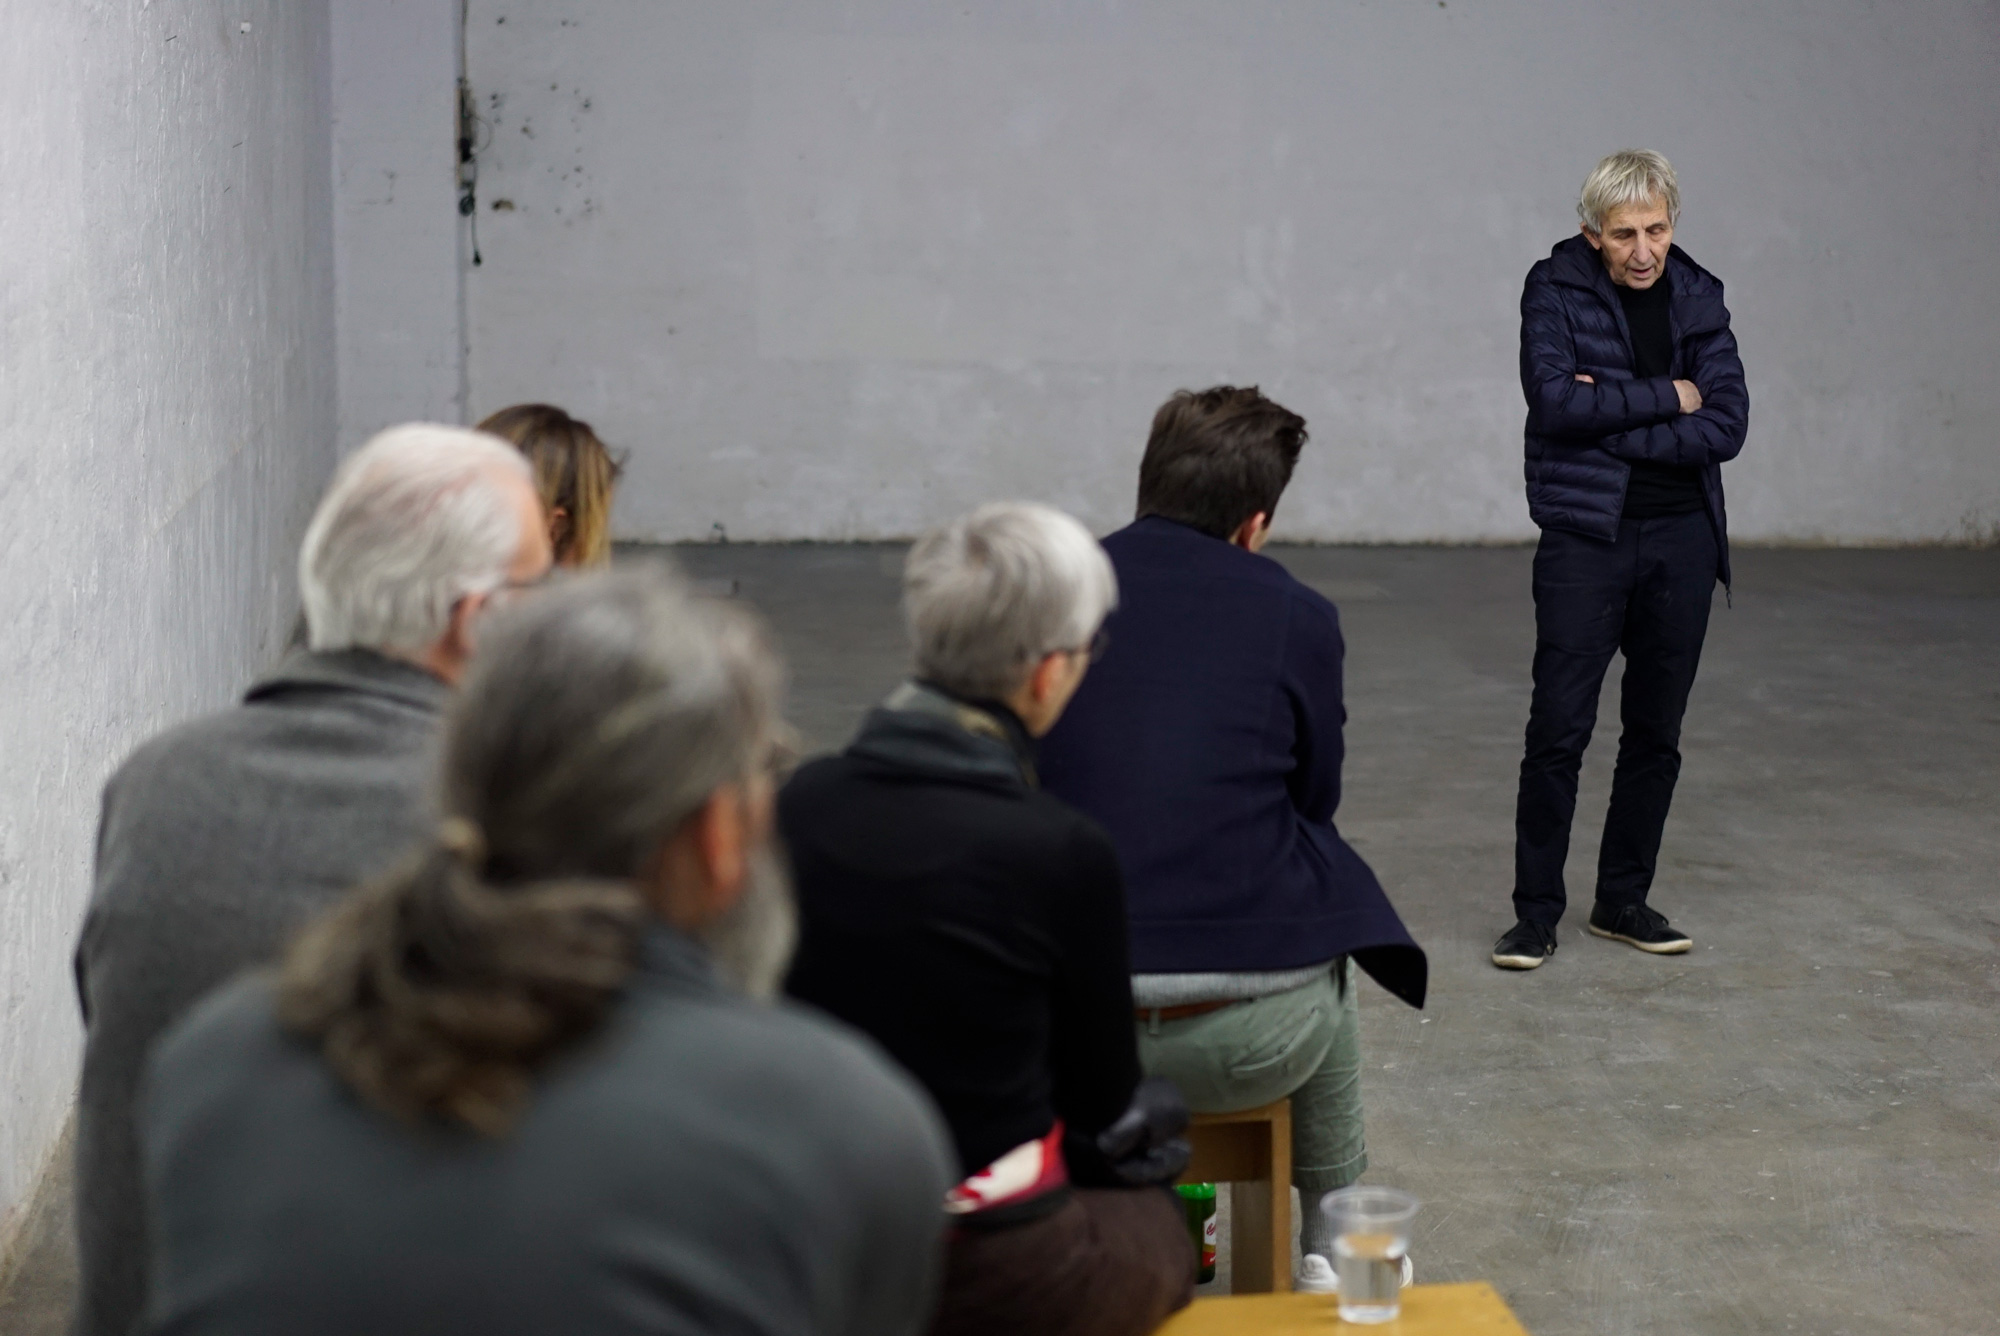 THE STORY OF GEORGE MACIUNAS AND FLUXUS by JEFFREY PERKINS - Jeffrey Perkins im Publikumsgespräch - 27.09.2019 Studio For Artistic Research Jeffrey Perkins Düsseldorf